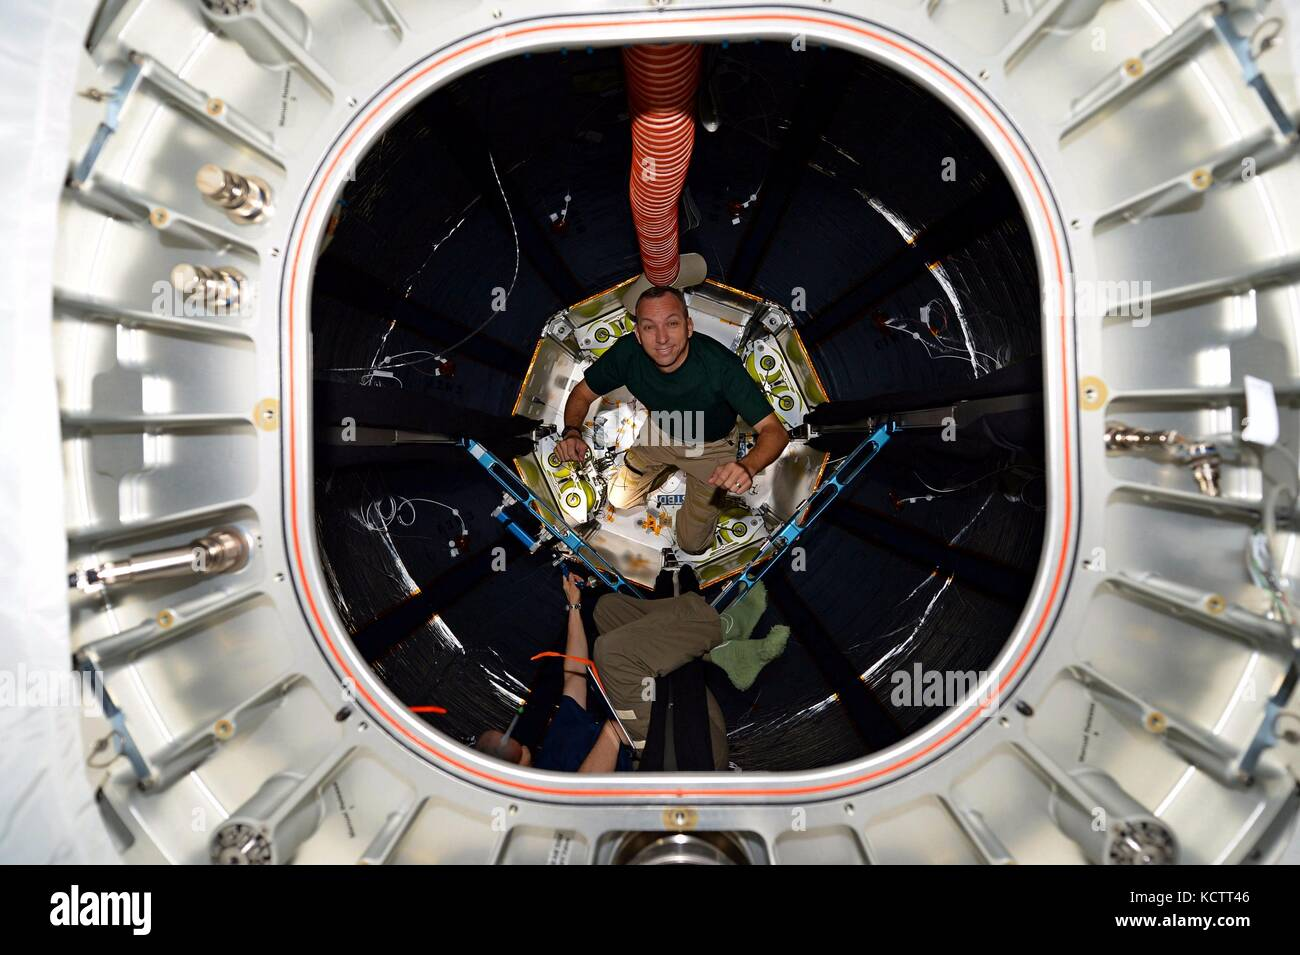 International Space Station Expedition 53 American astronaut Jack Fischer inspects the interior of the BEAM module - Stock Image